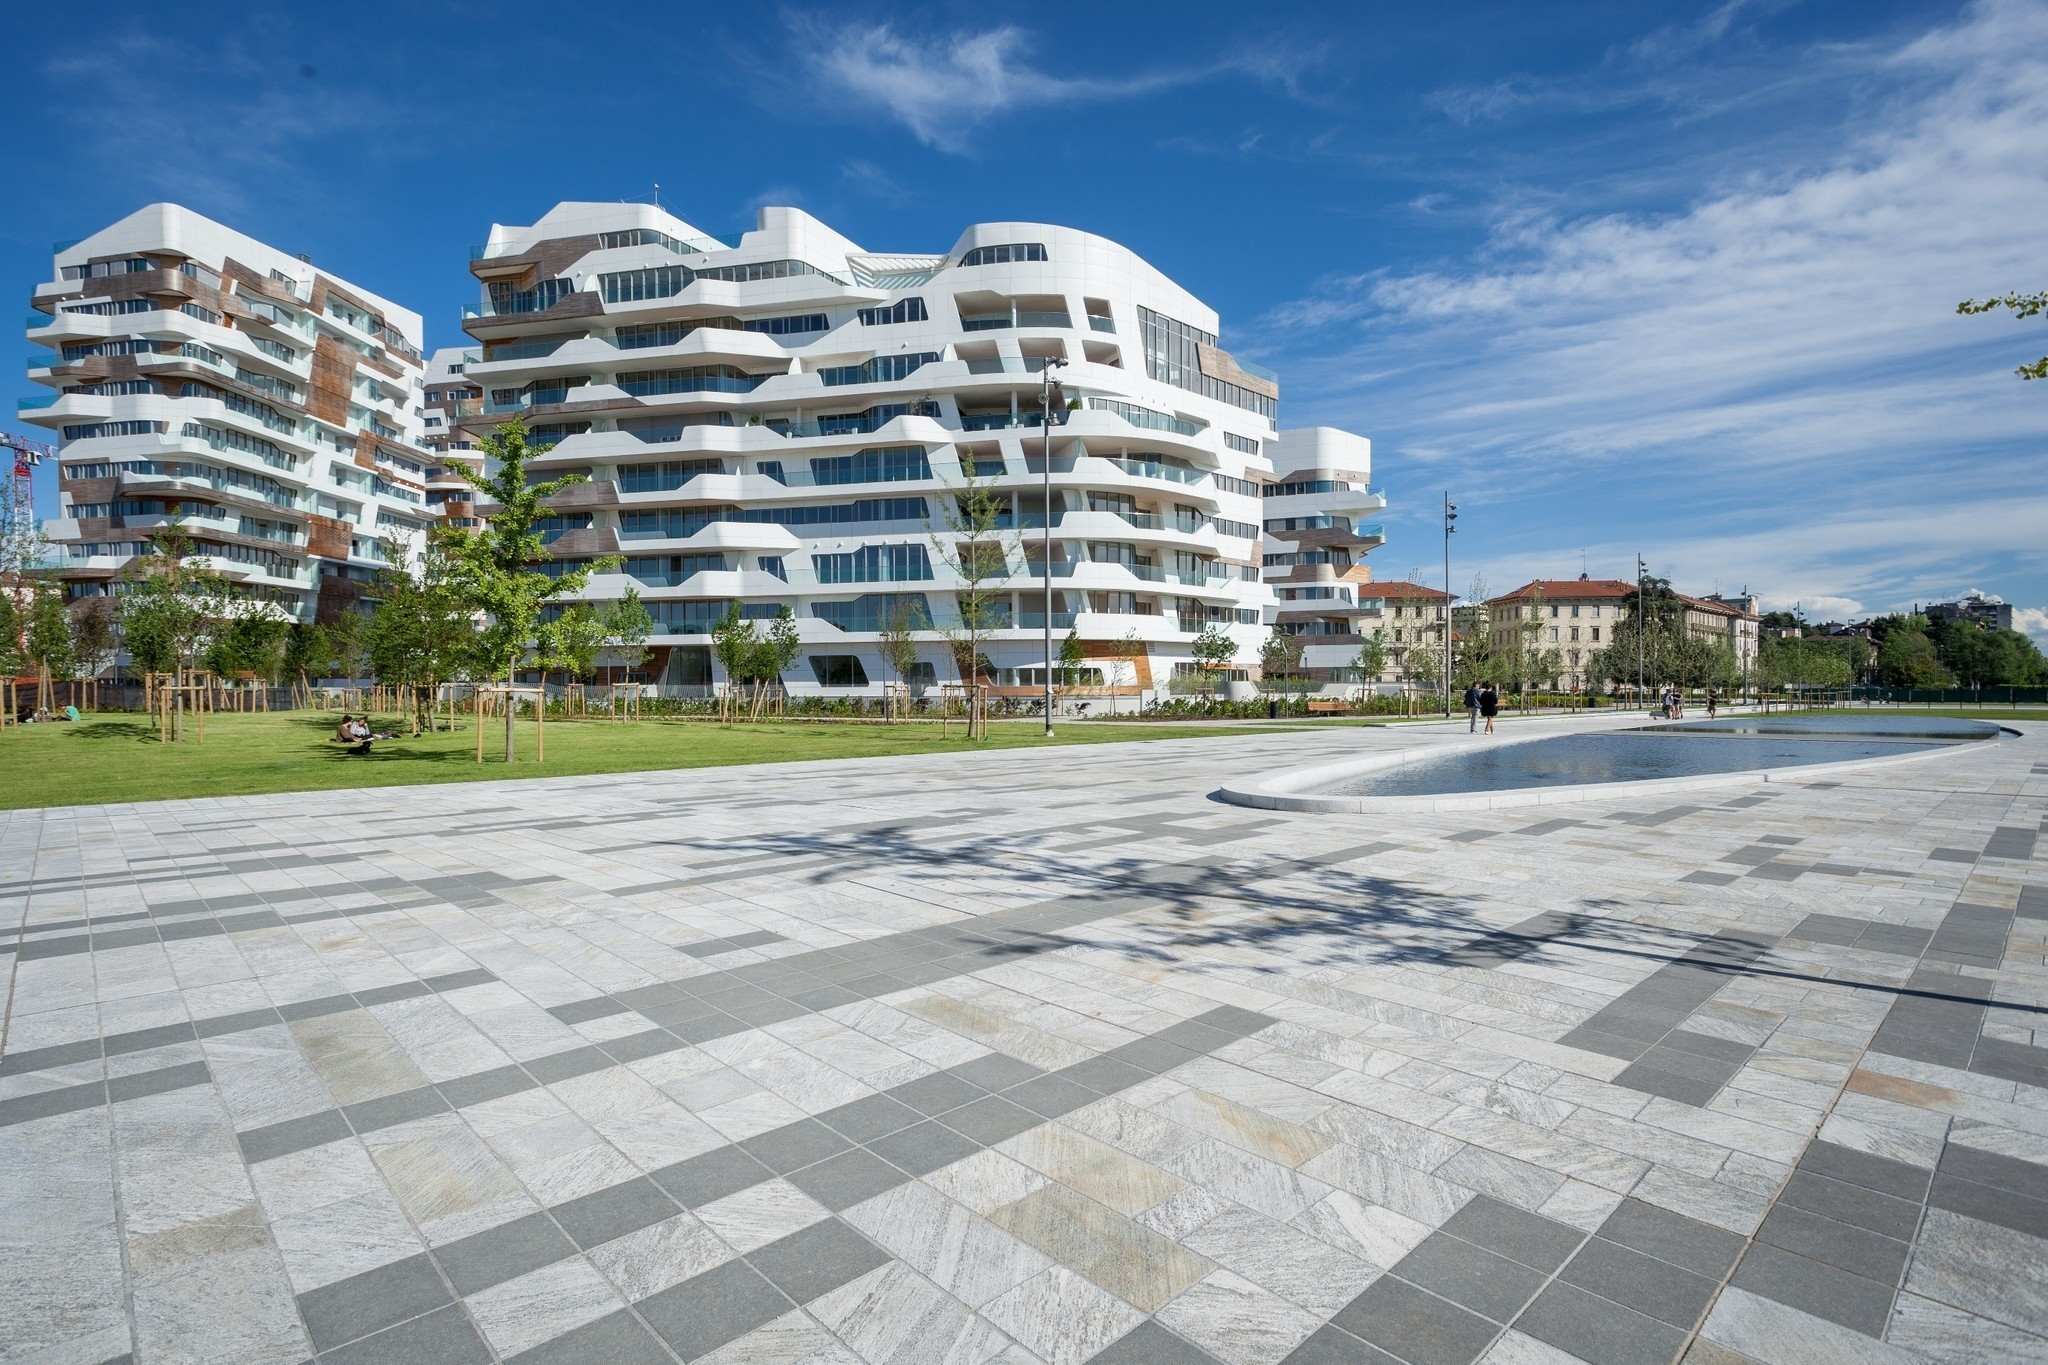 View of the pedestrian area in CityLife, promoting a safe ambiance and creating a biophilic residential area.